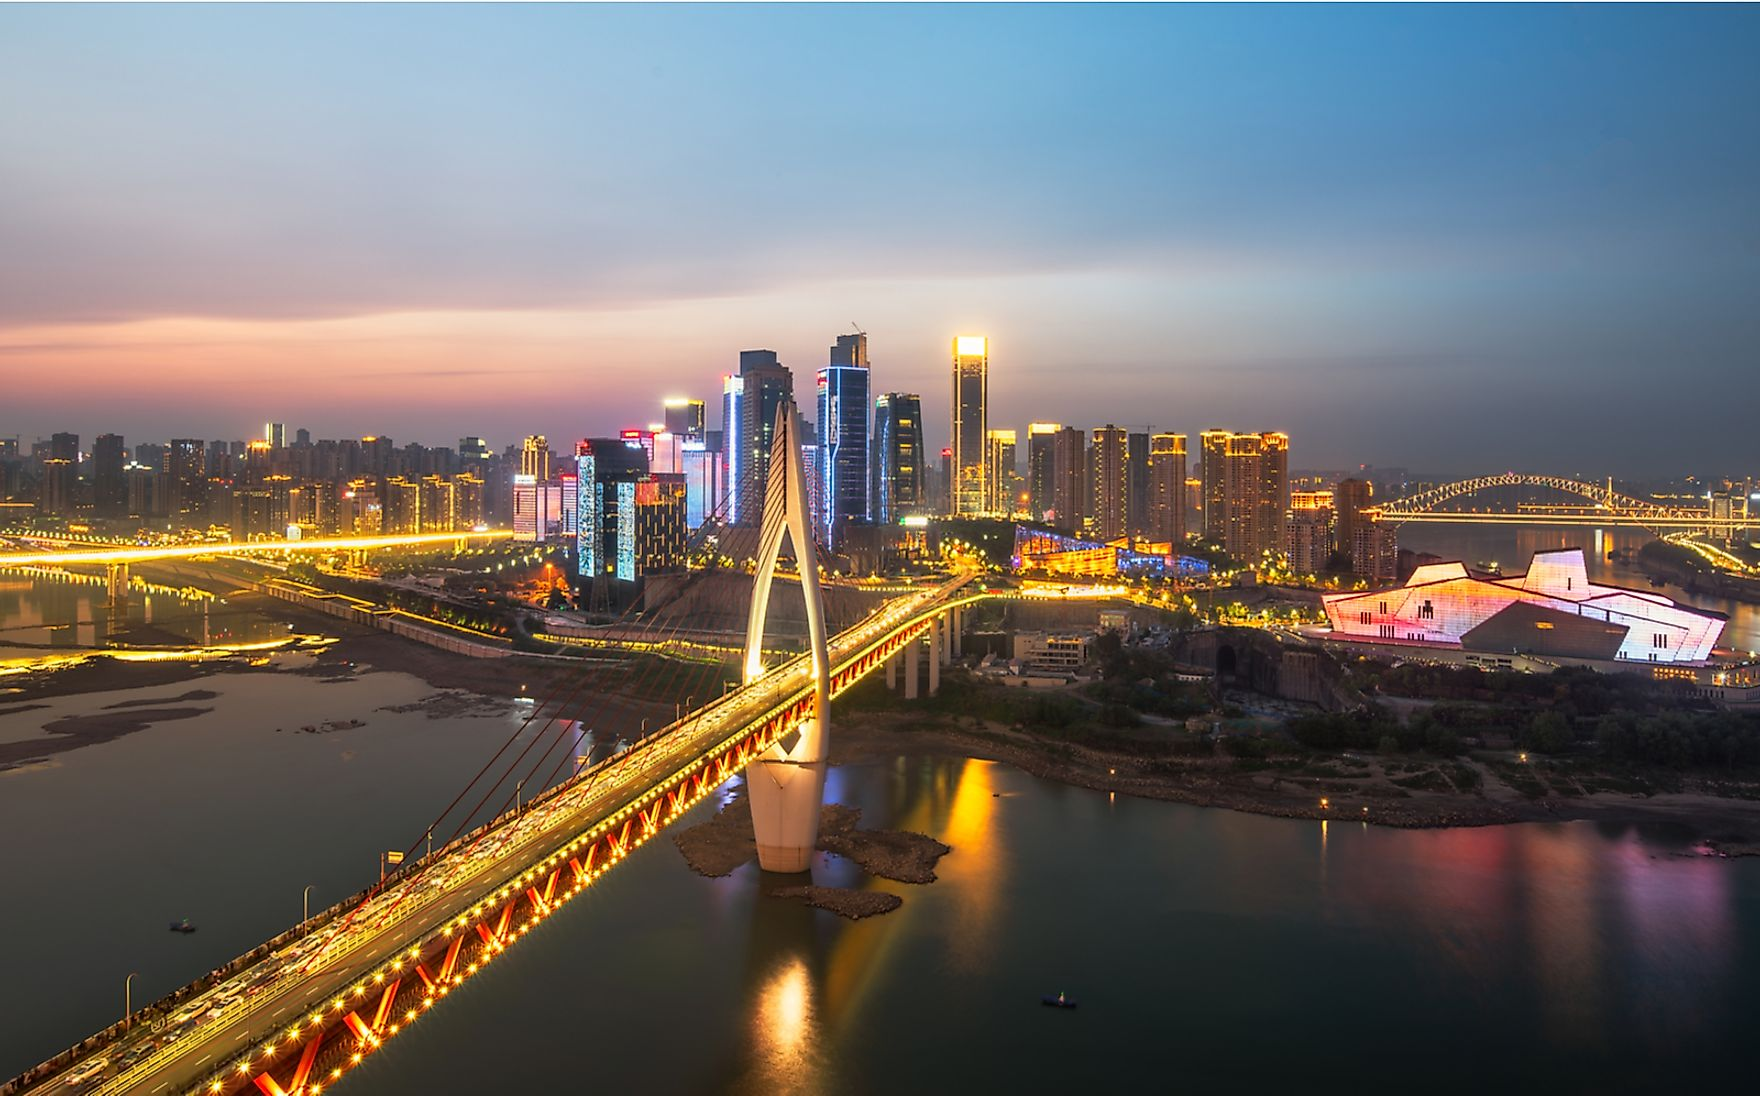 Chongqing, China, is a sprawling megalopolis of more than 20 million.